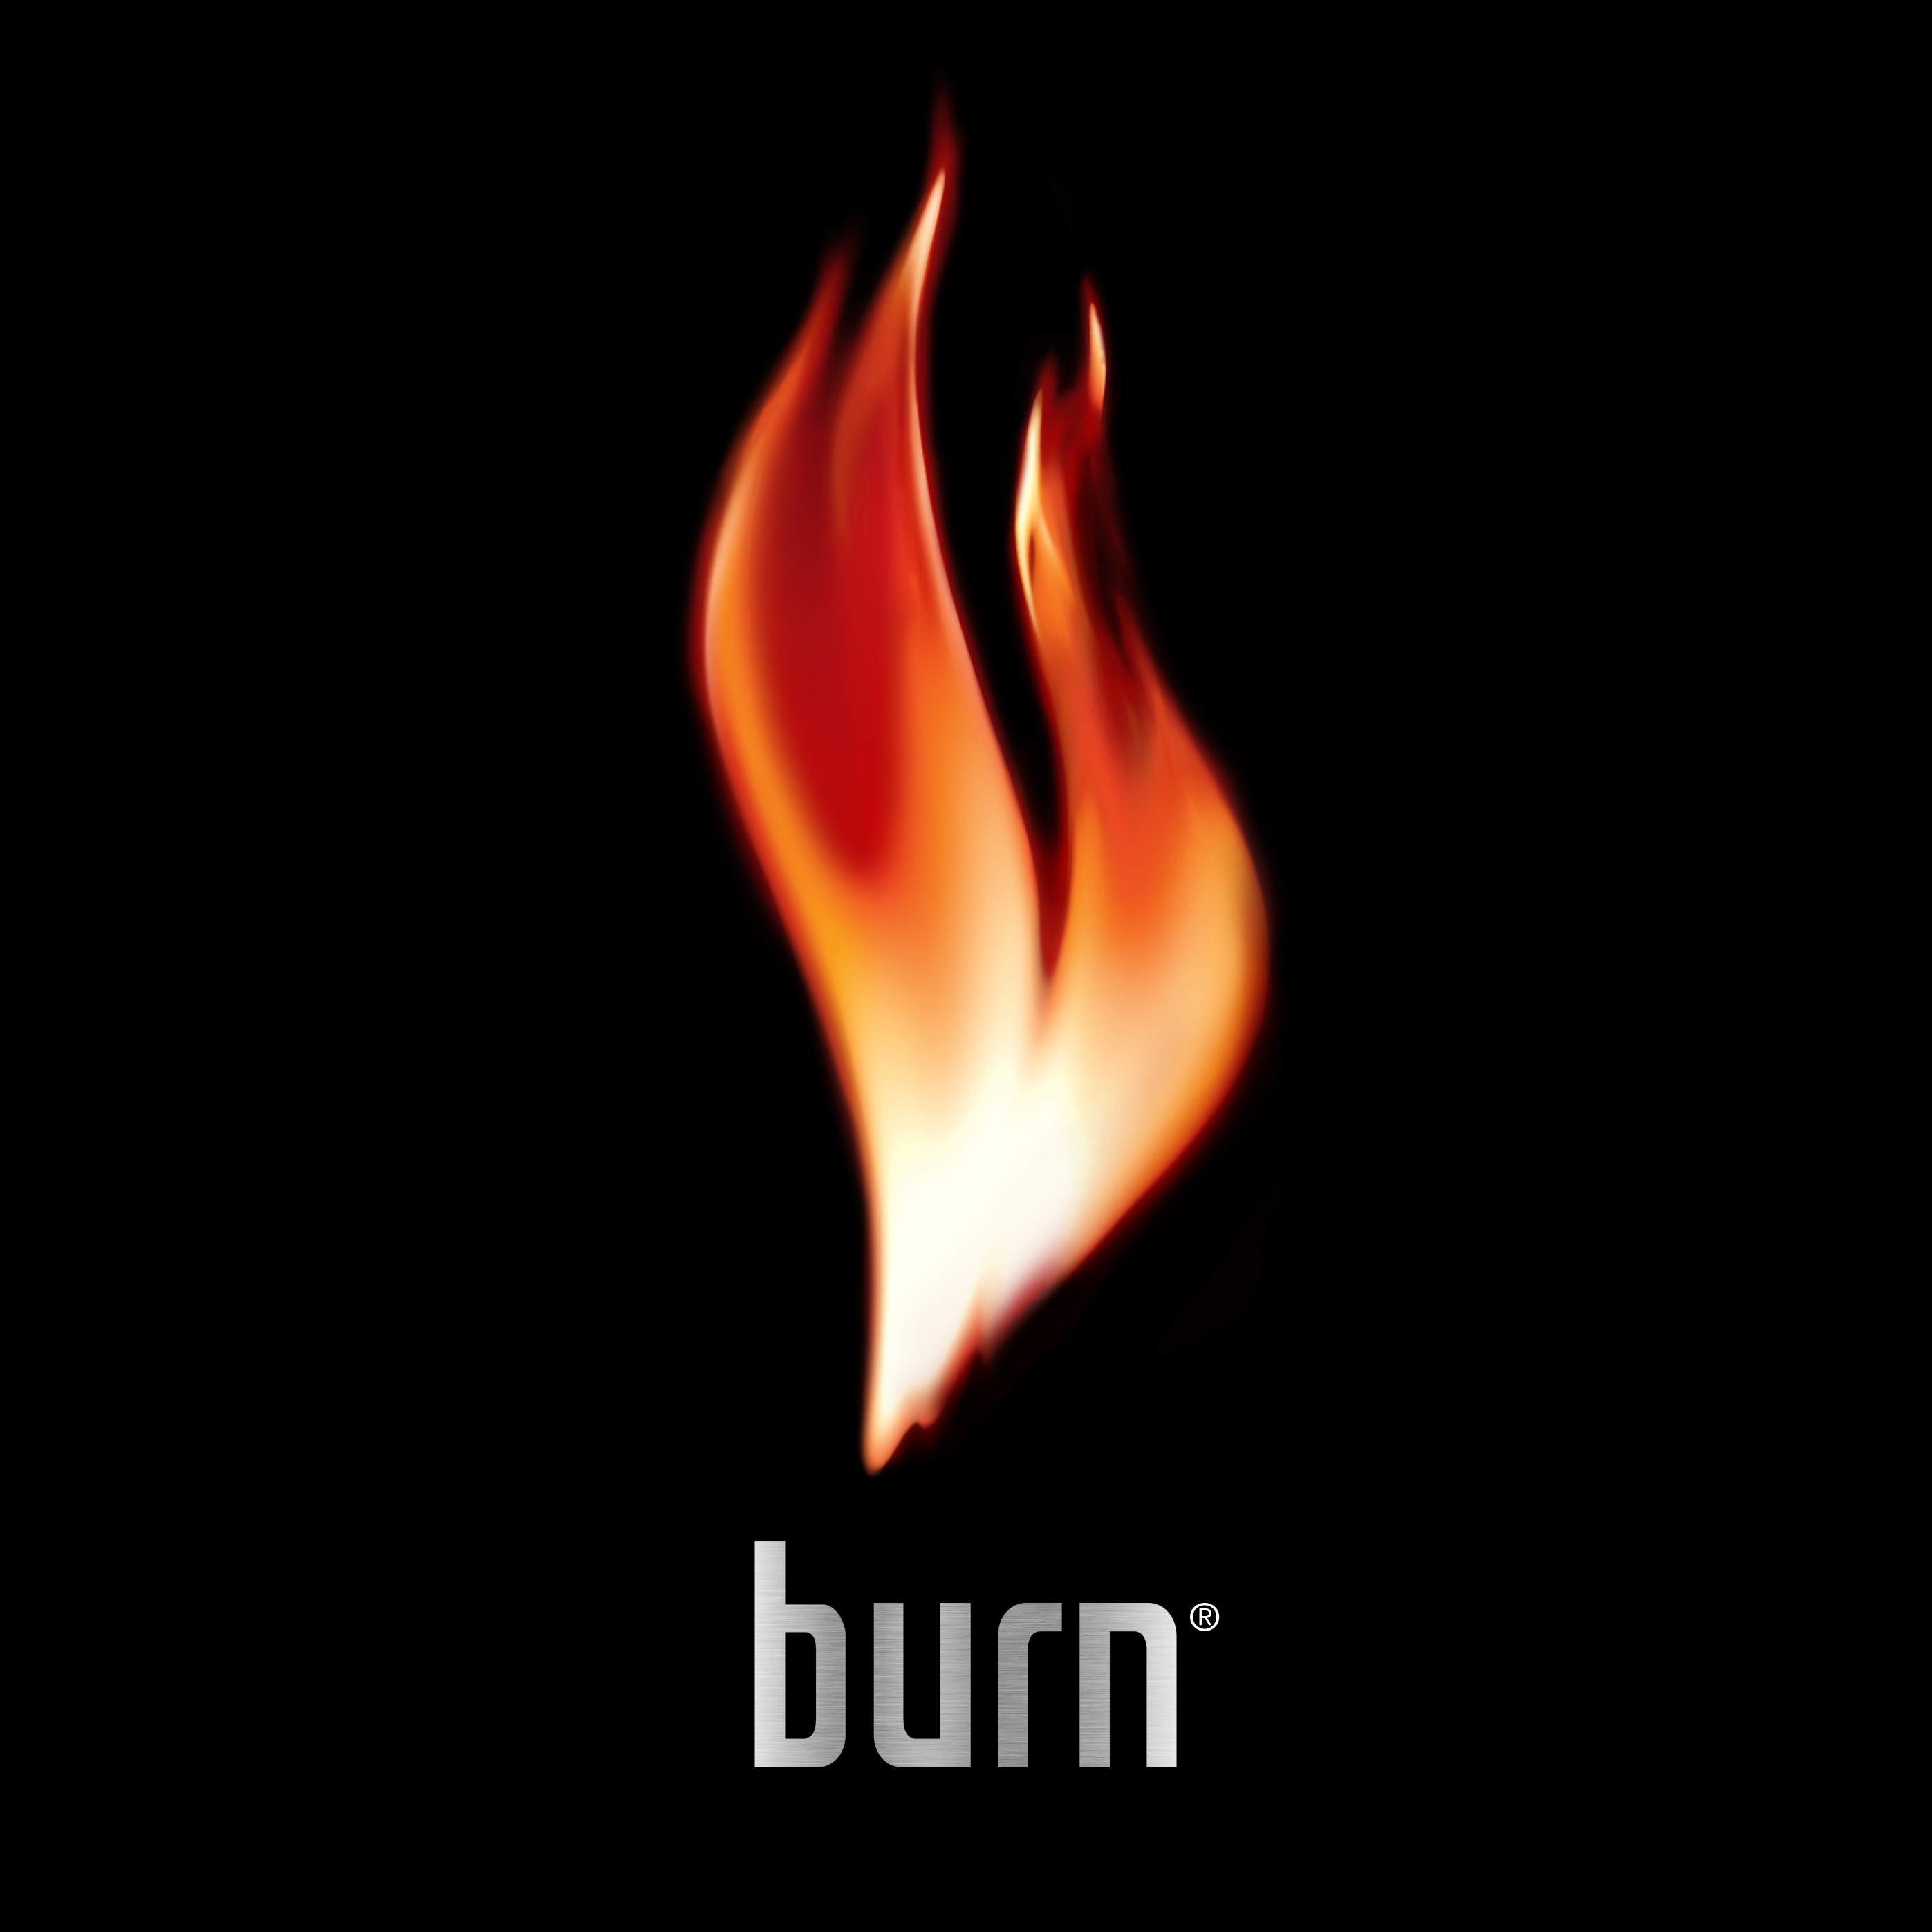 F1 – Lotus F1 Team ignites new partnership with burn; the COCA-COLA Company returns to Formula 1